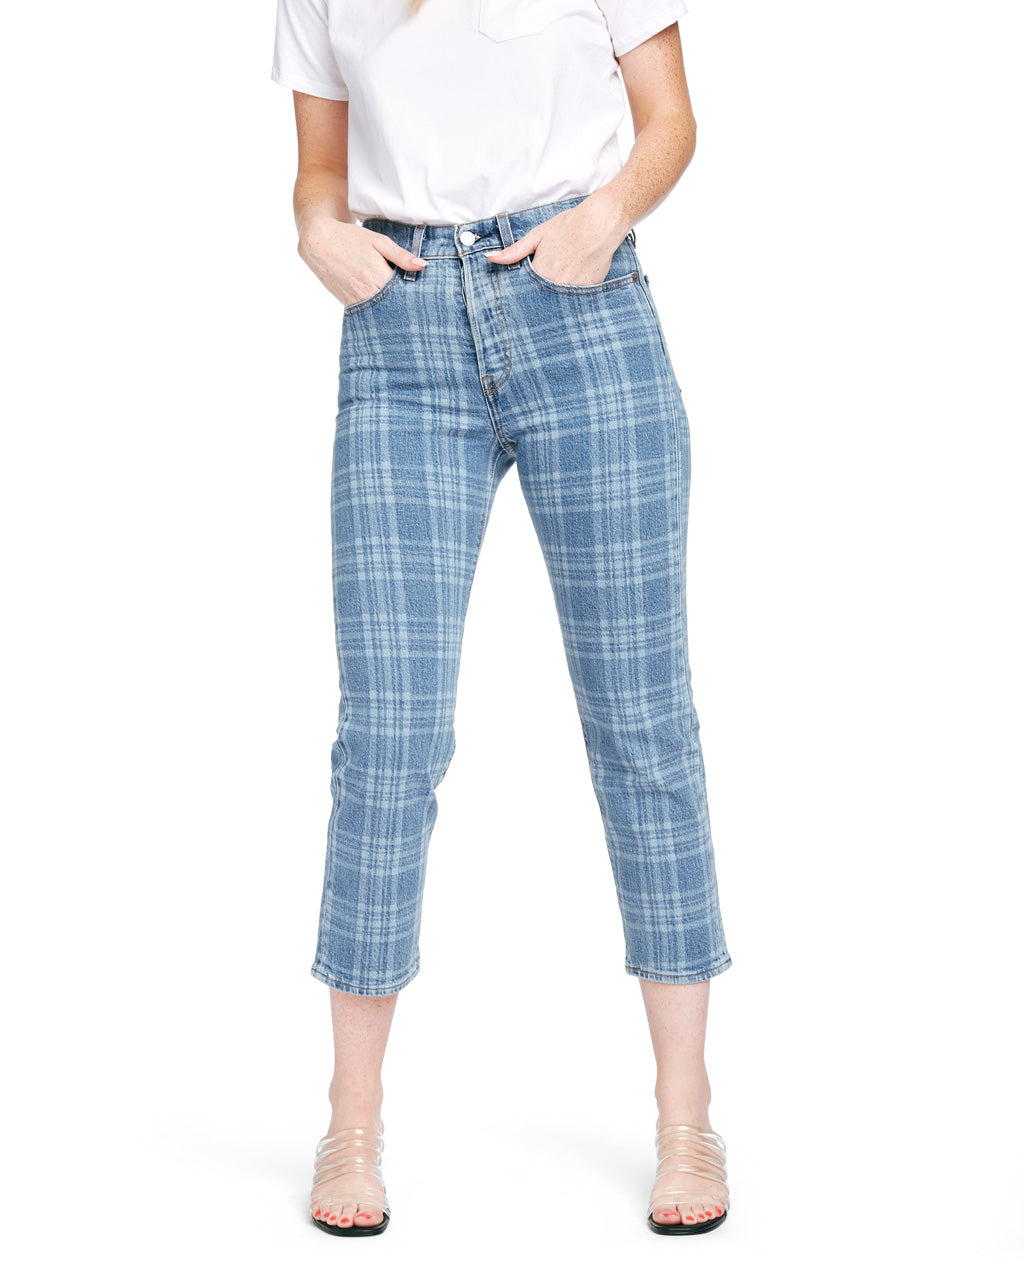 Vintage inspired Levi's jeans with a plaid pattern.